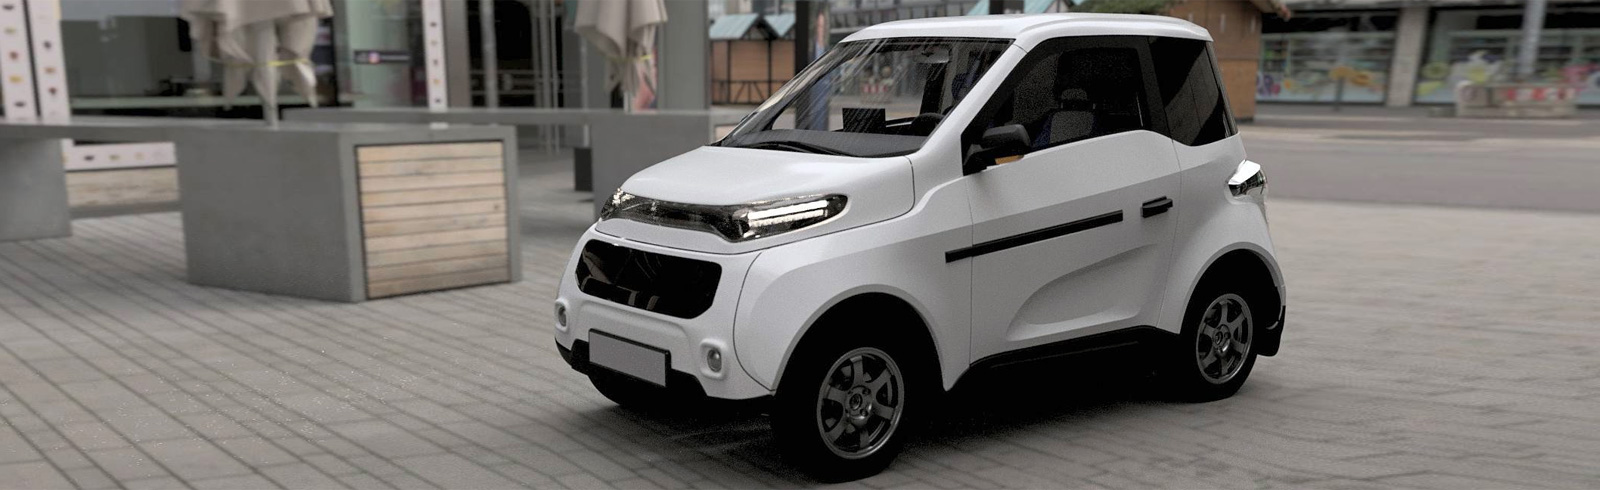 Zetta - the first Russian all-electric vehicle will enter mass production by the end of the year